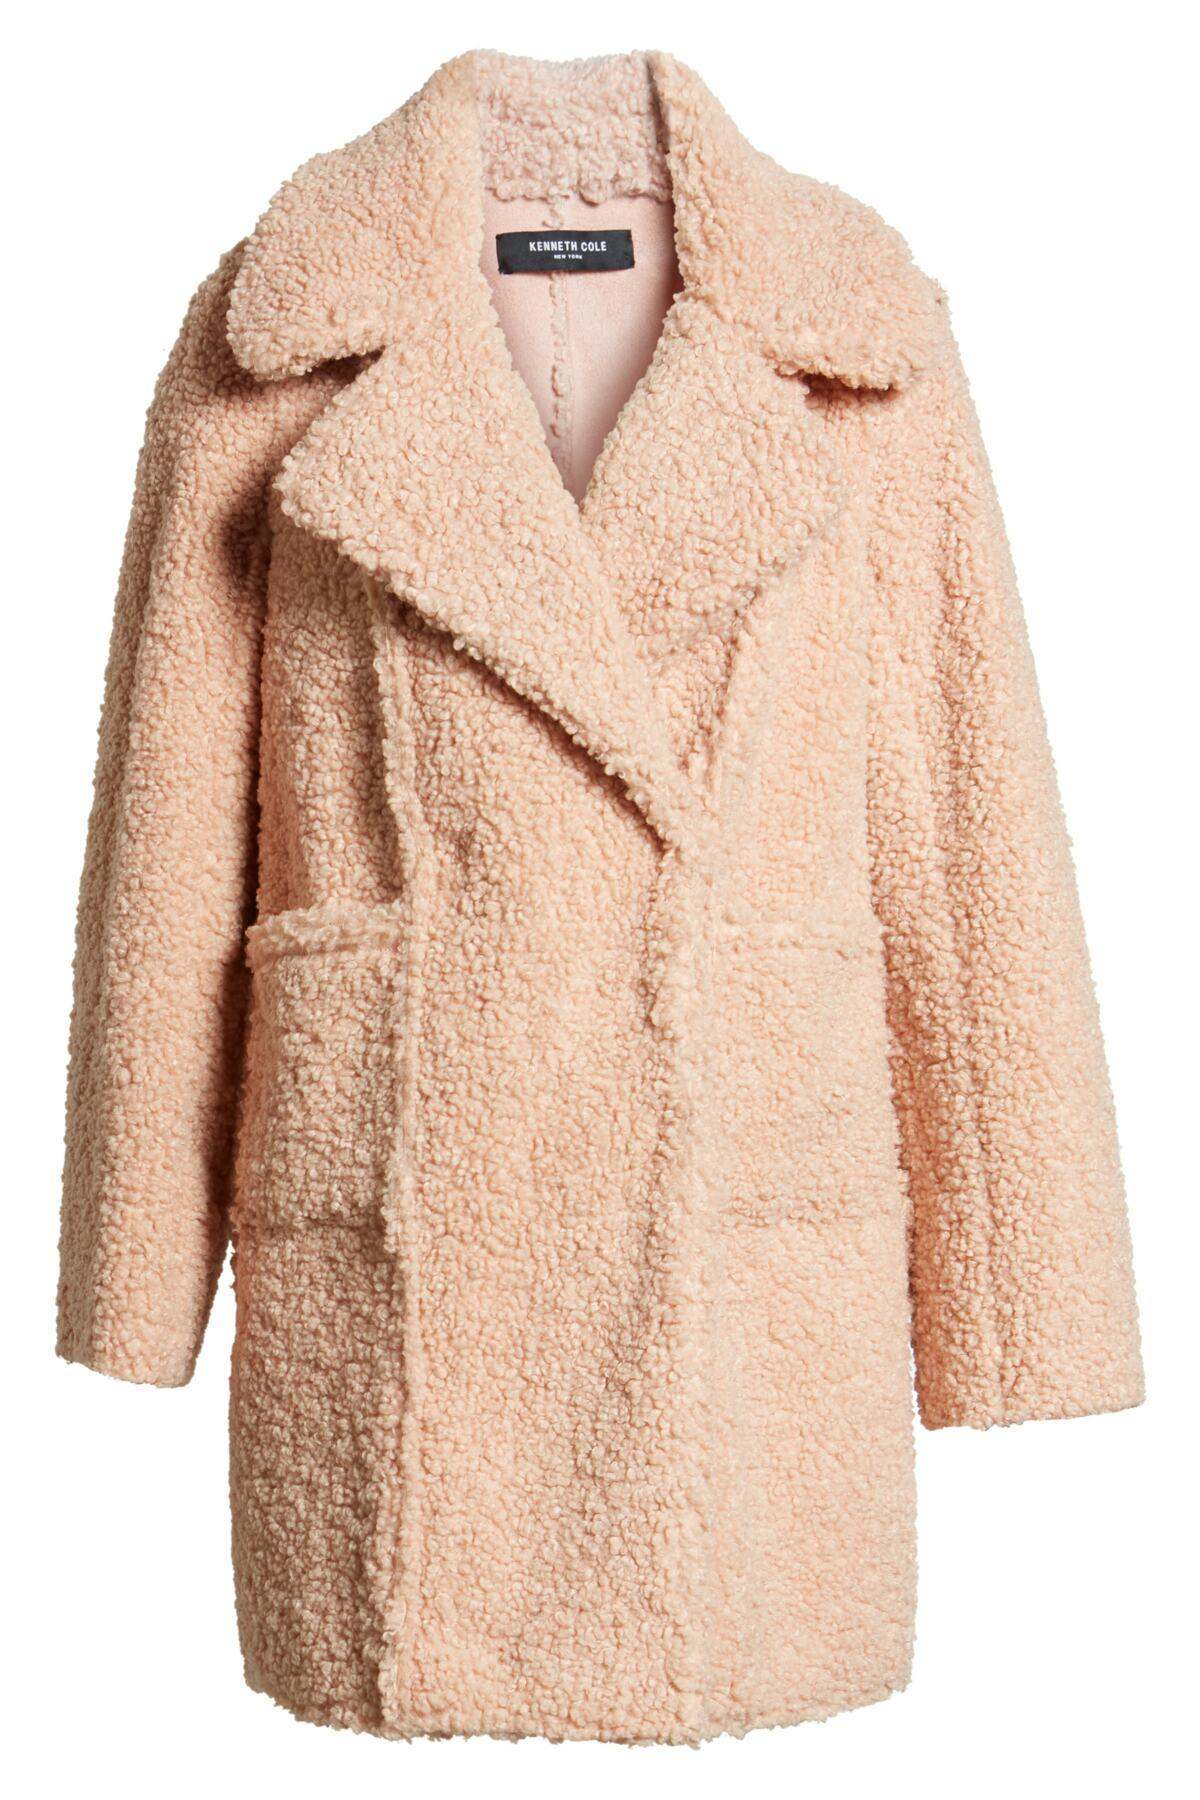 e24056bd1663f Lyst - Kenneth Cole Notch Collar Curly Faux Shearling Coat in Pink